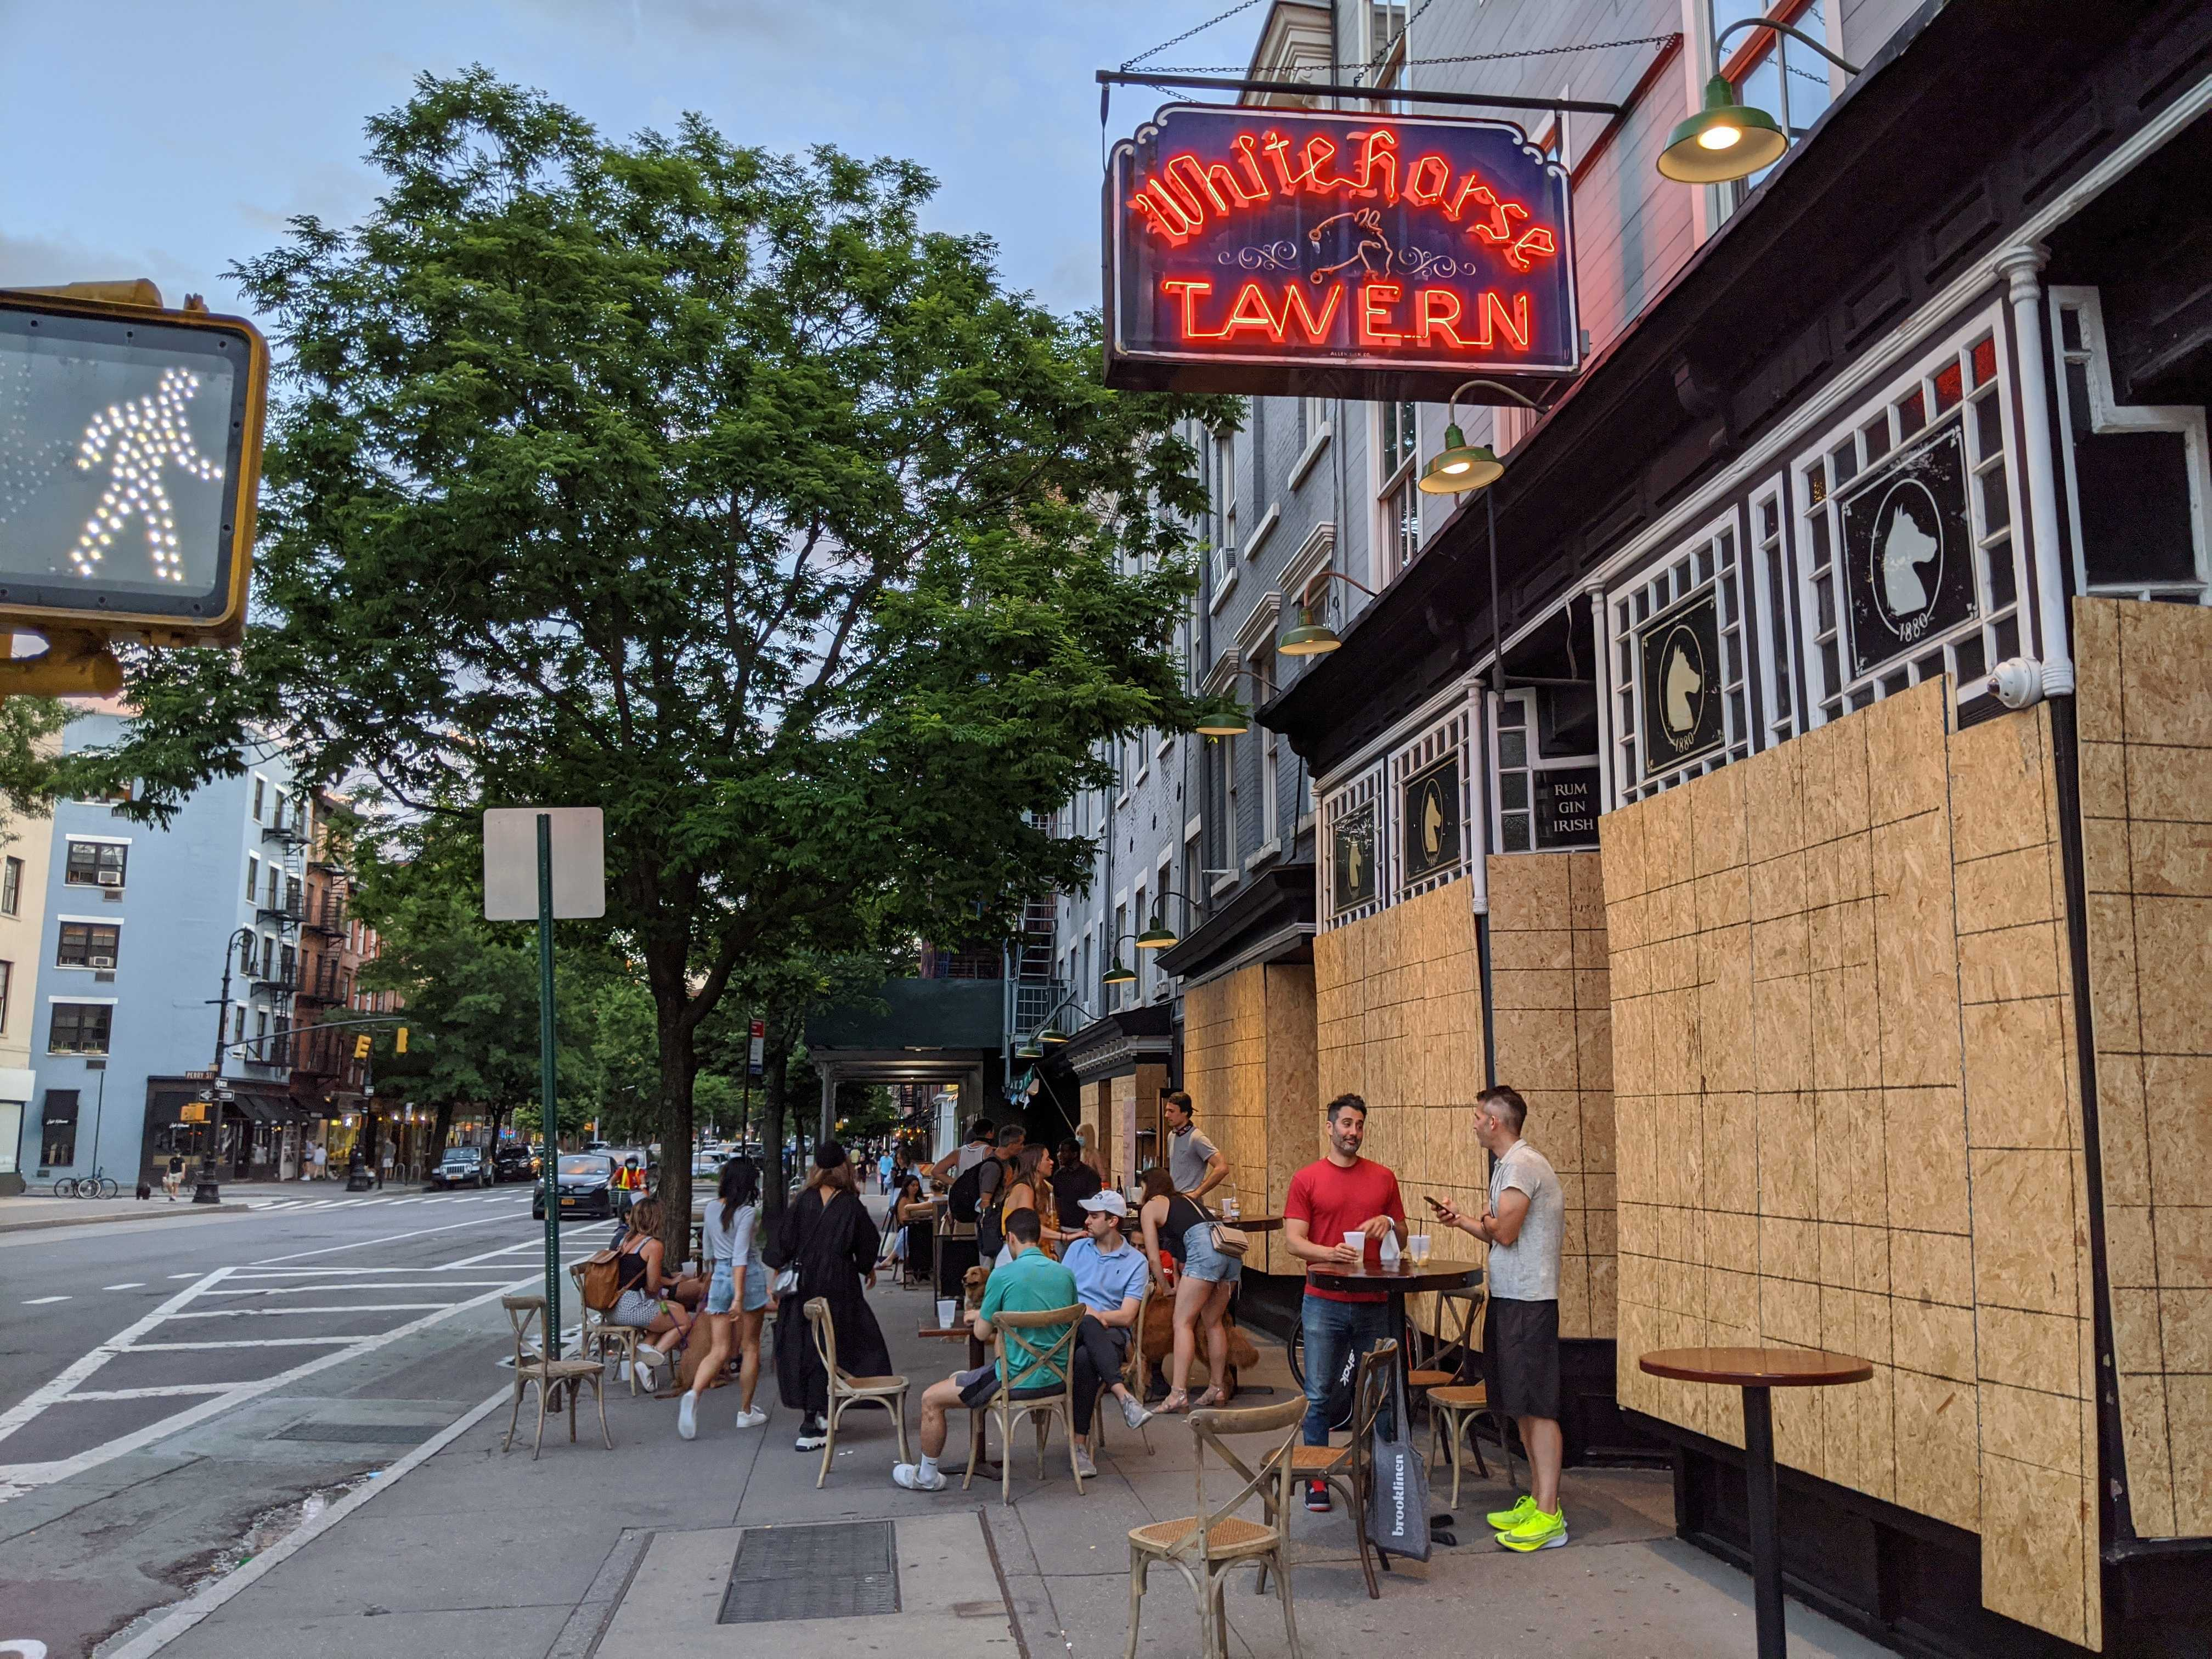 A boarded up restaurant with tables and chairs set up outside on the sidewalk and customers sitting and drinking in front of the restaurant.